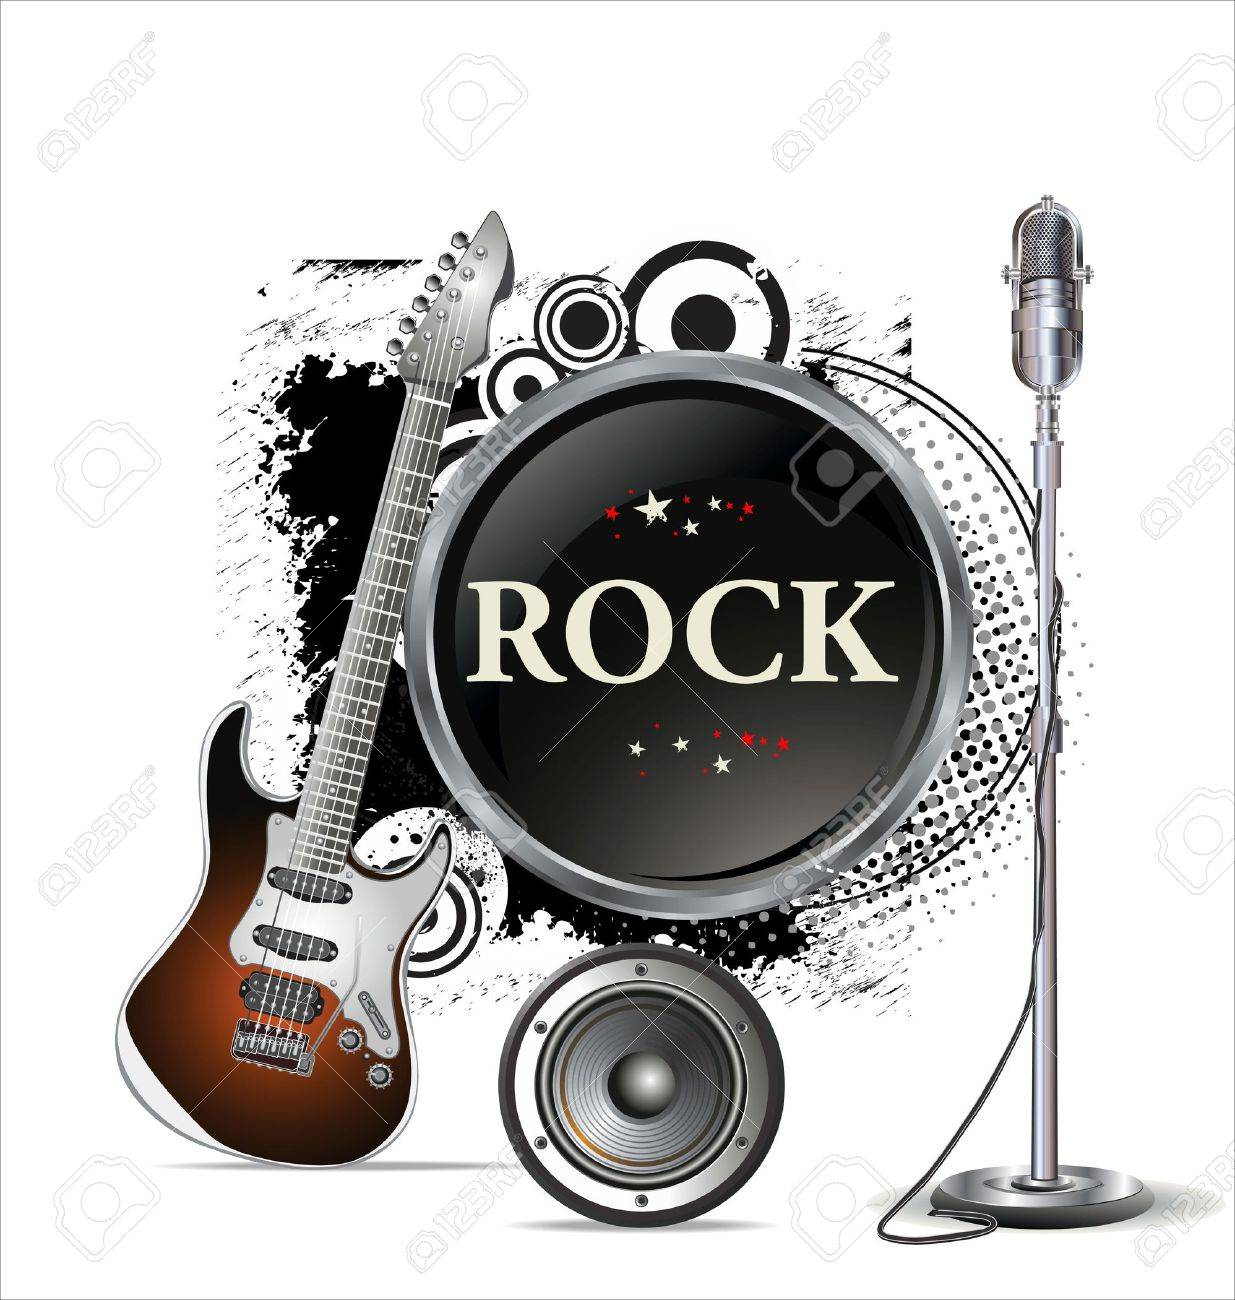 Rock Music Stock Photos & Pictures. Royalty Free Rock Music Images ...